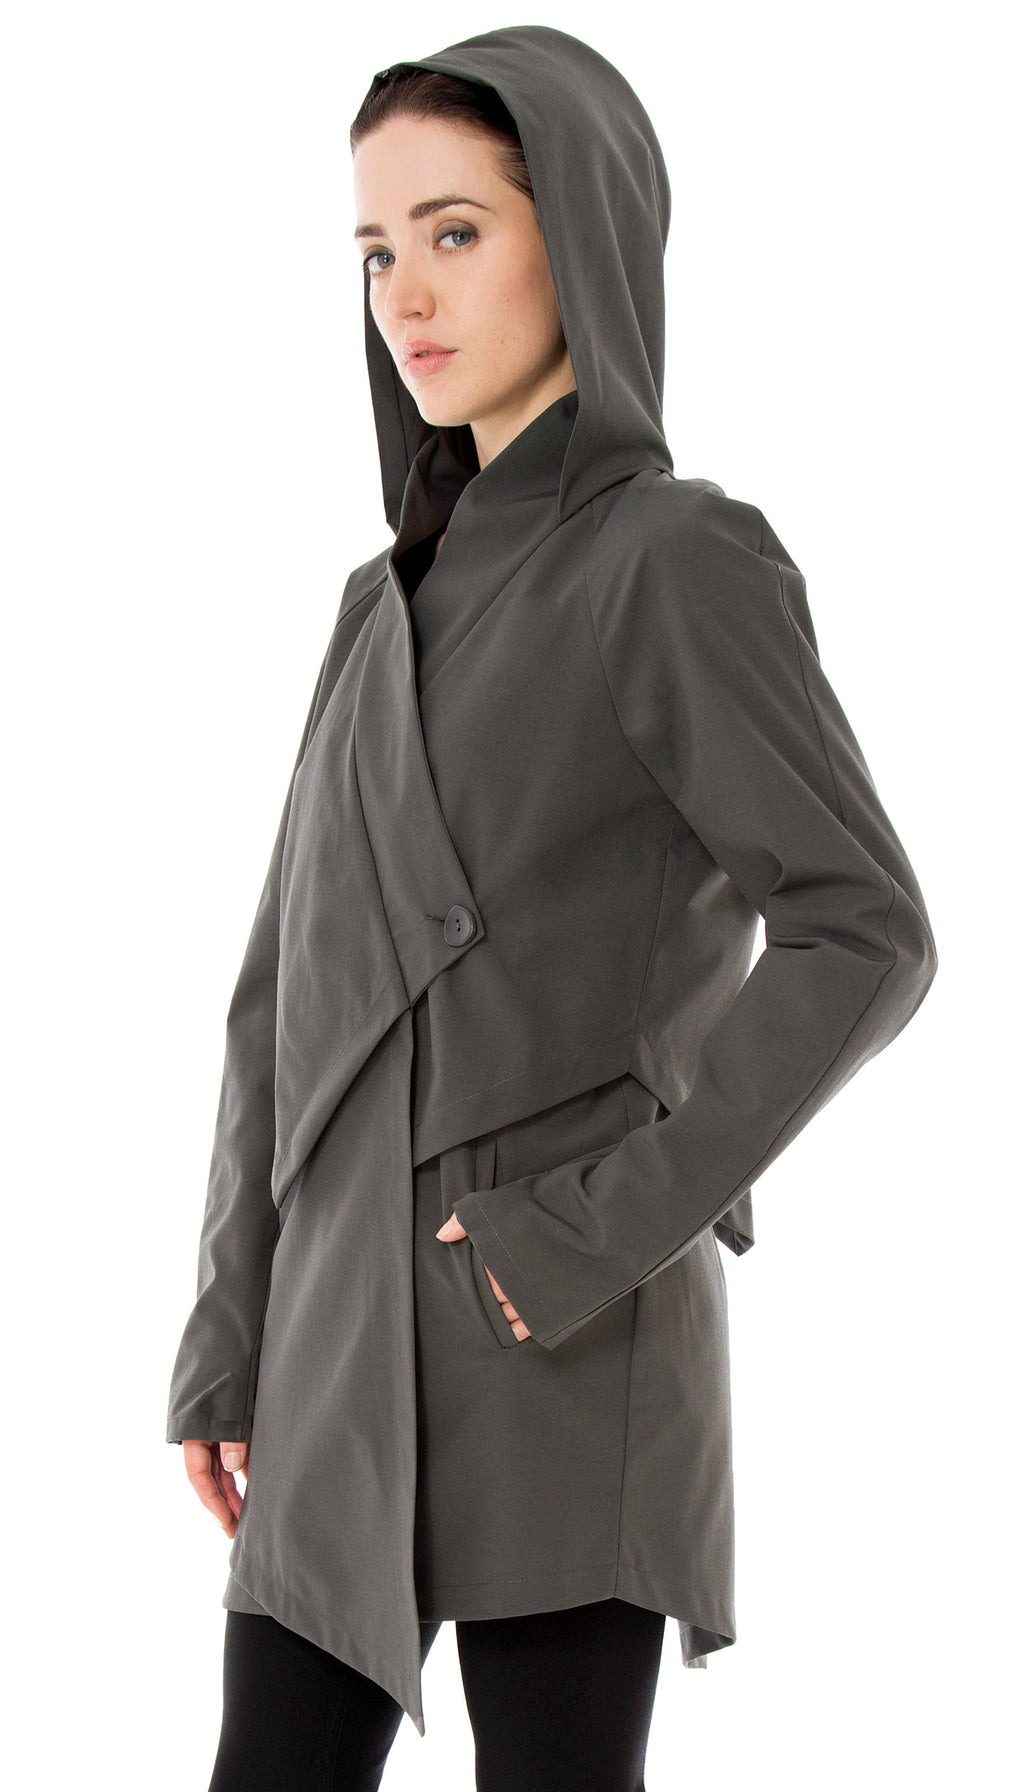 Convertible Hood Asymmetrical Rain Jacket/ Grey